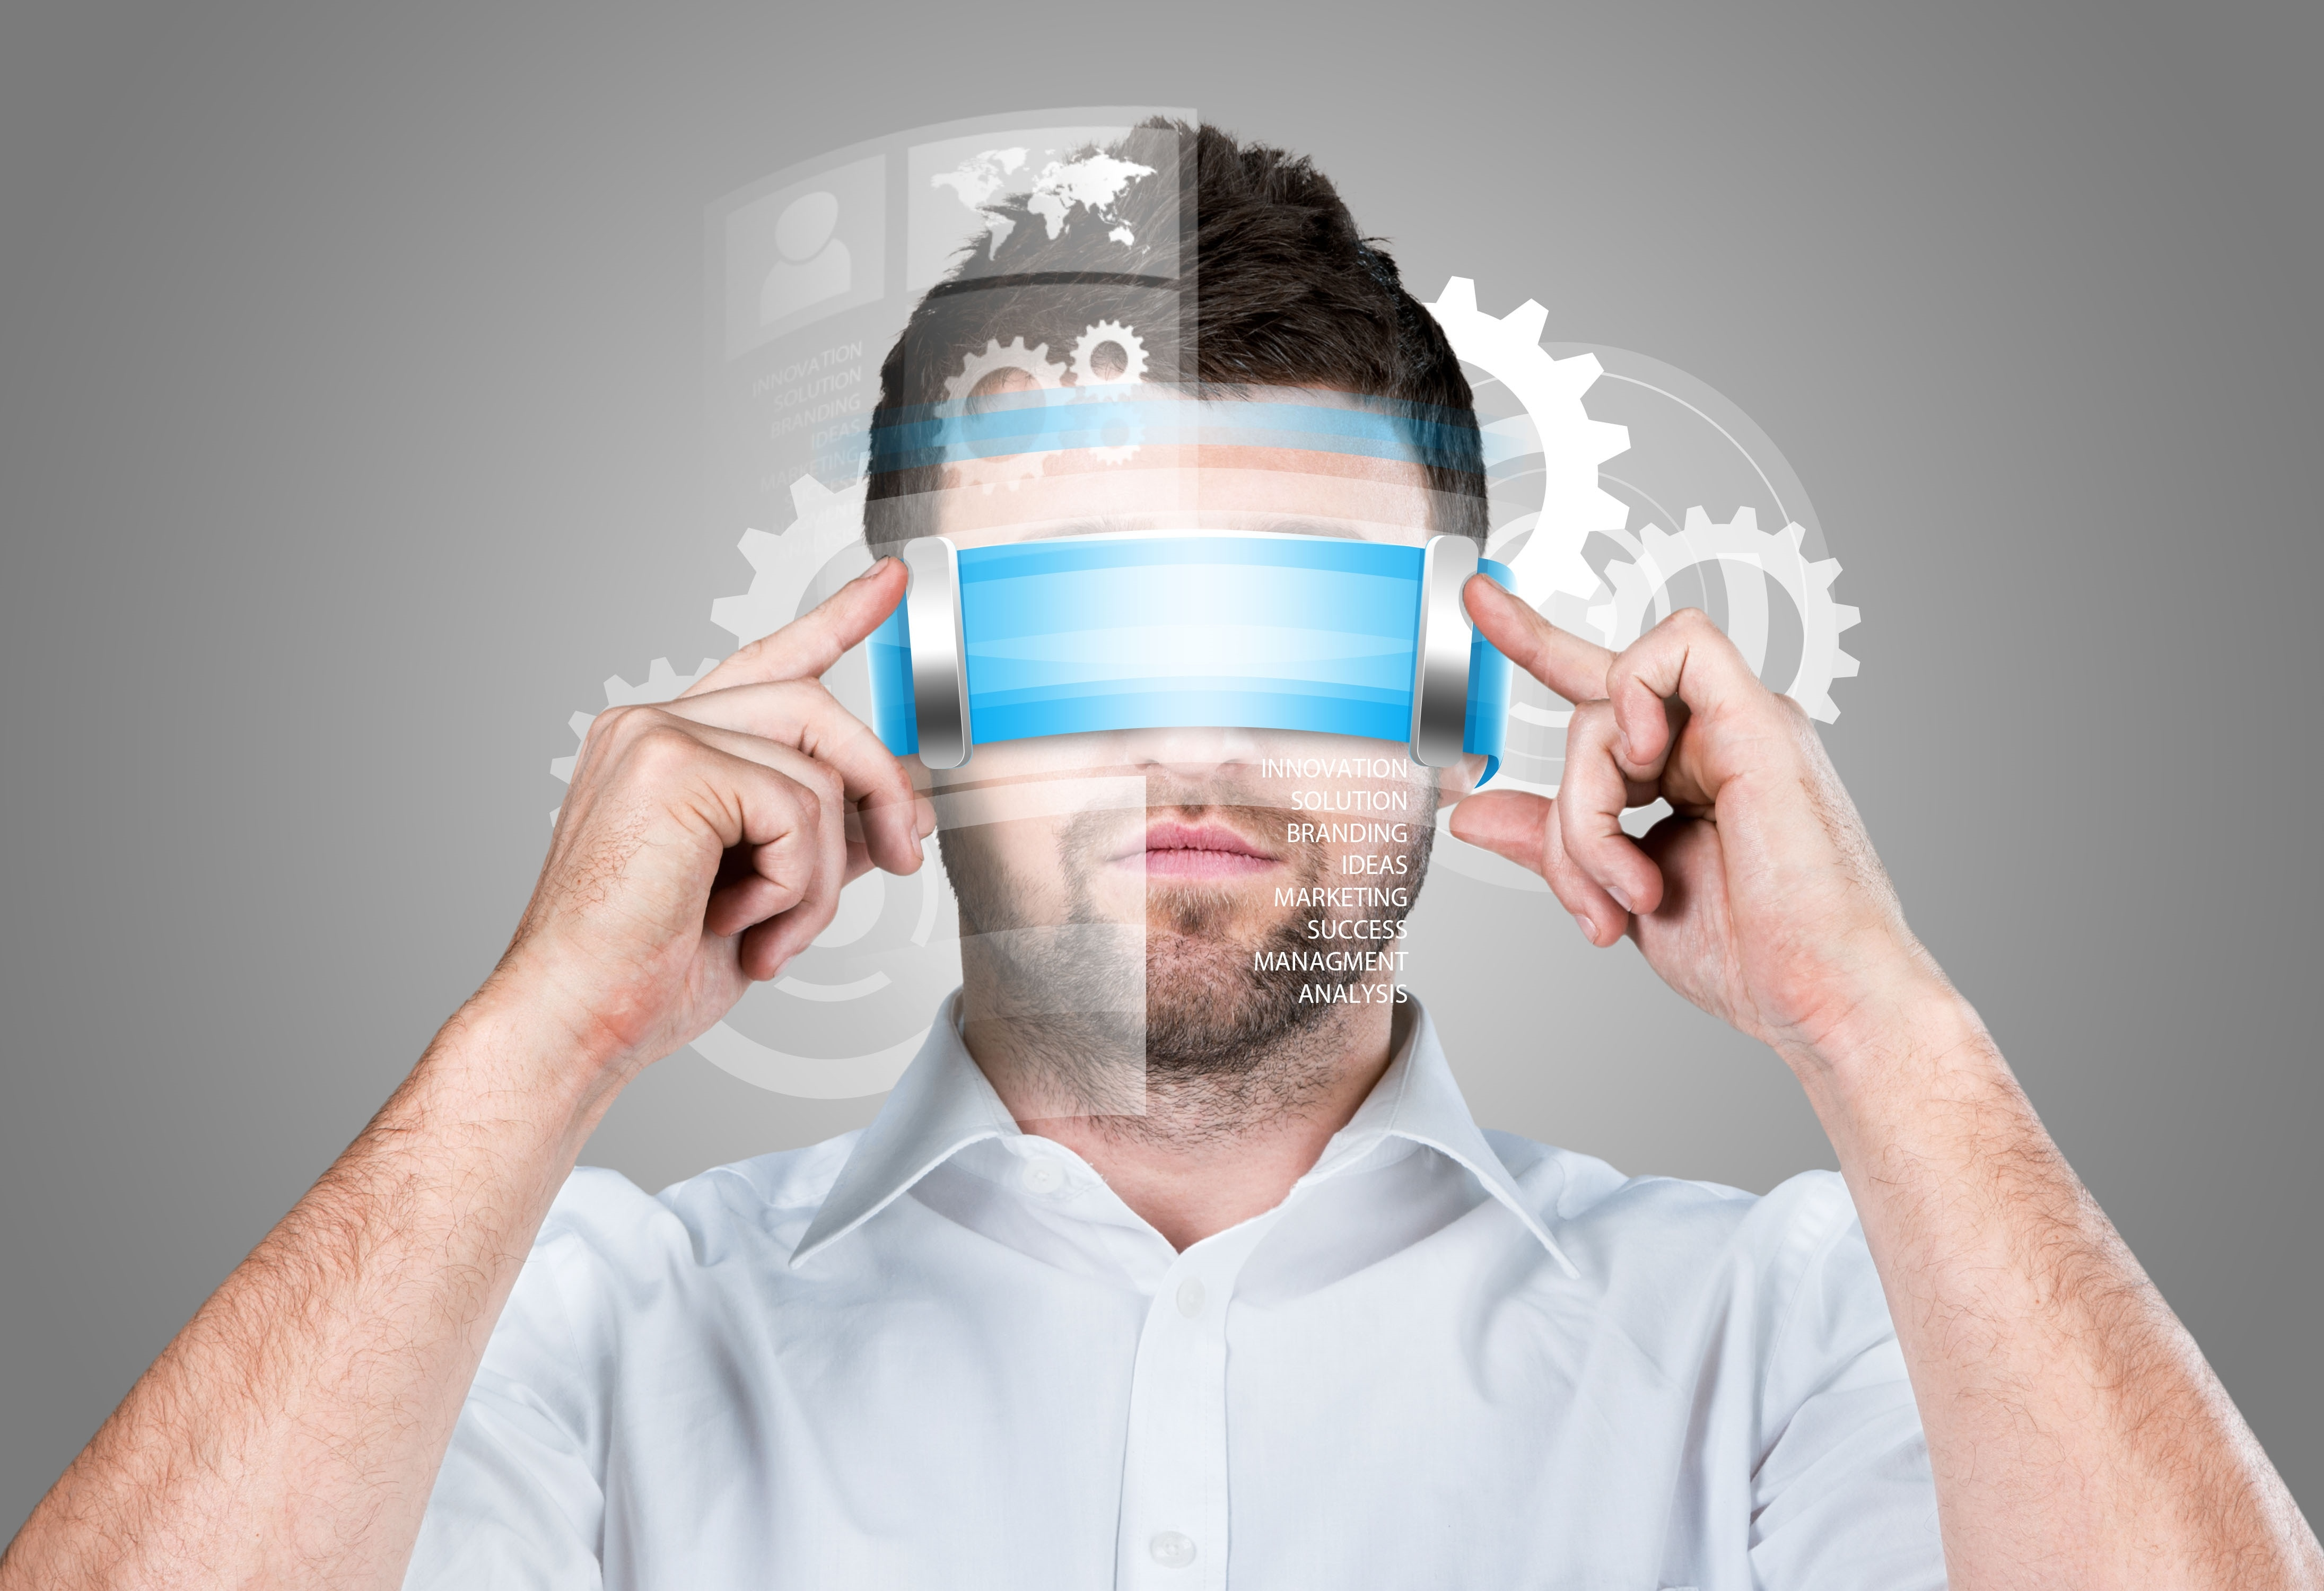 Diving into VR in the corporate world